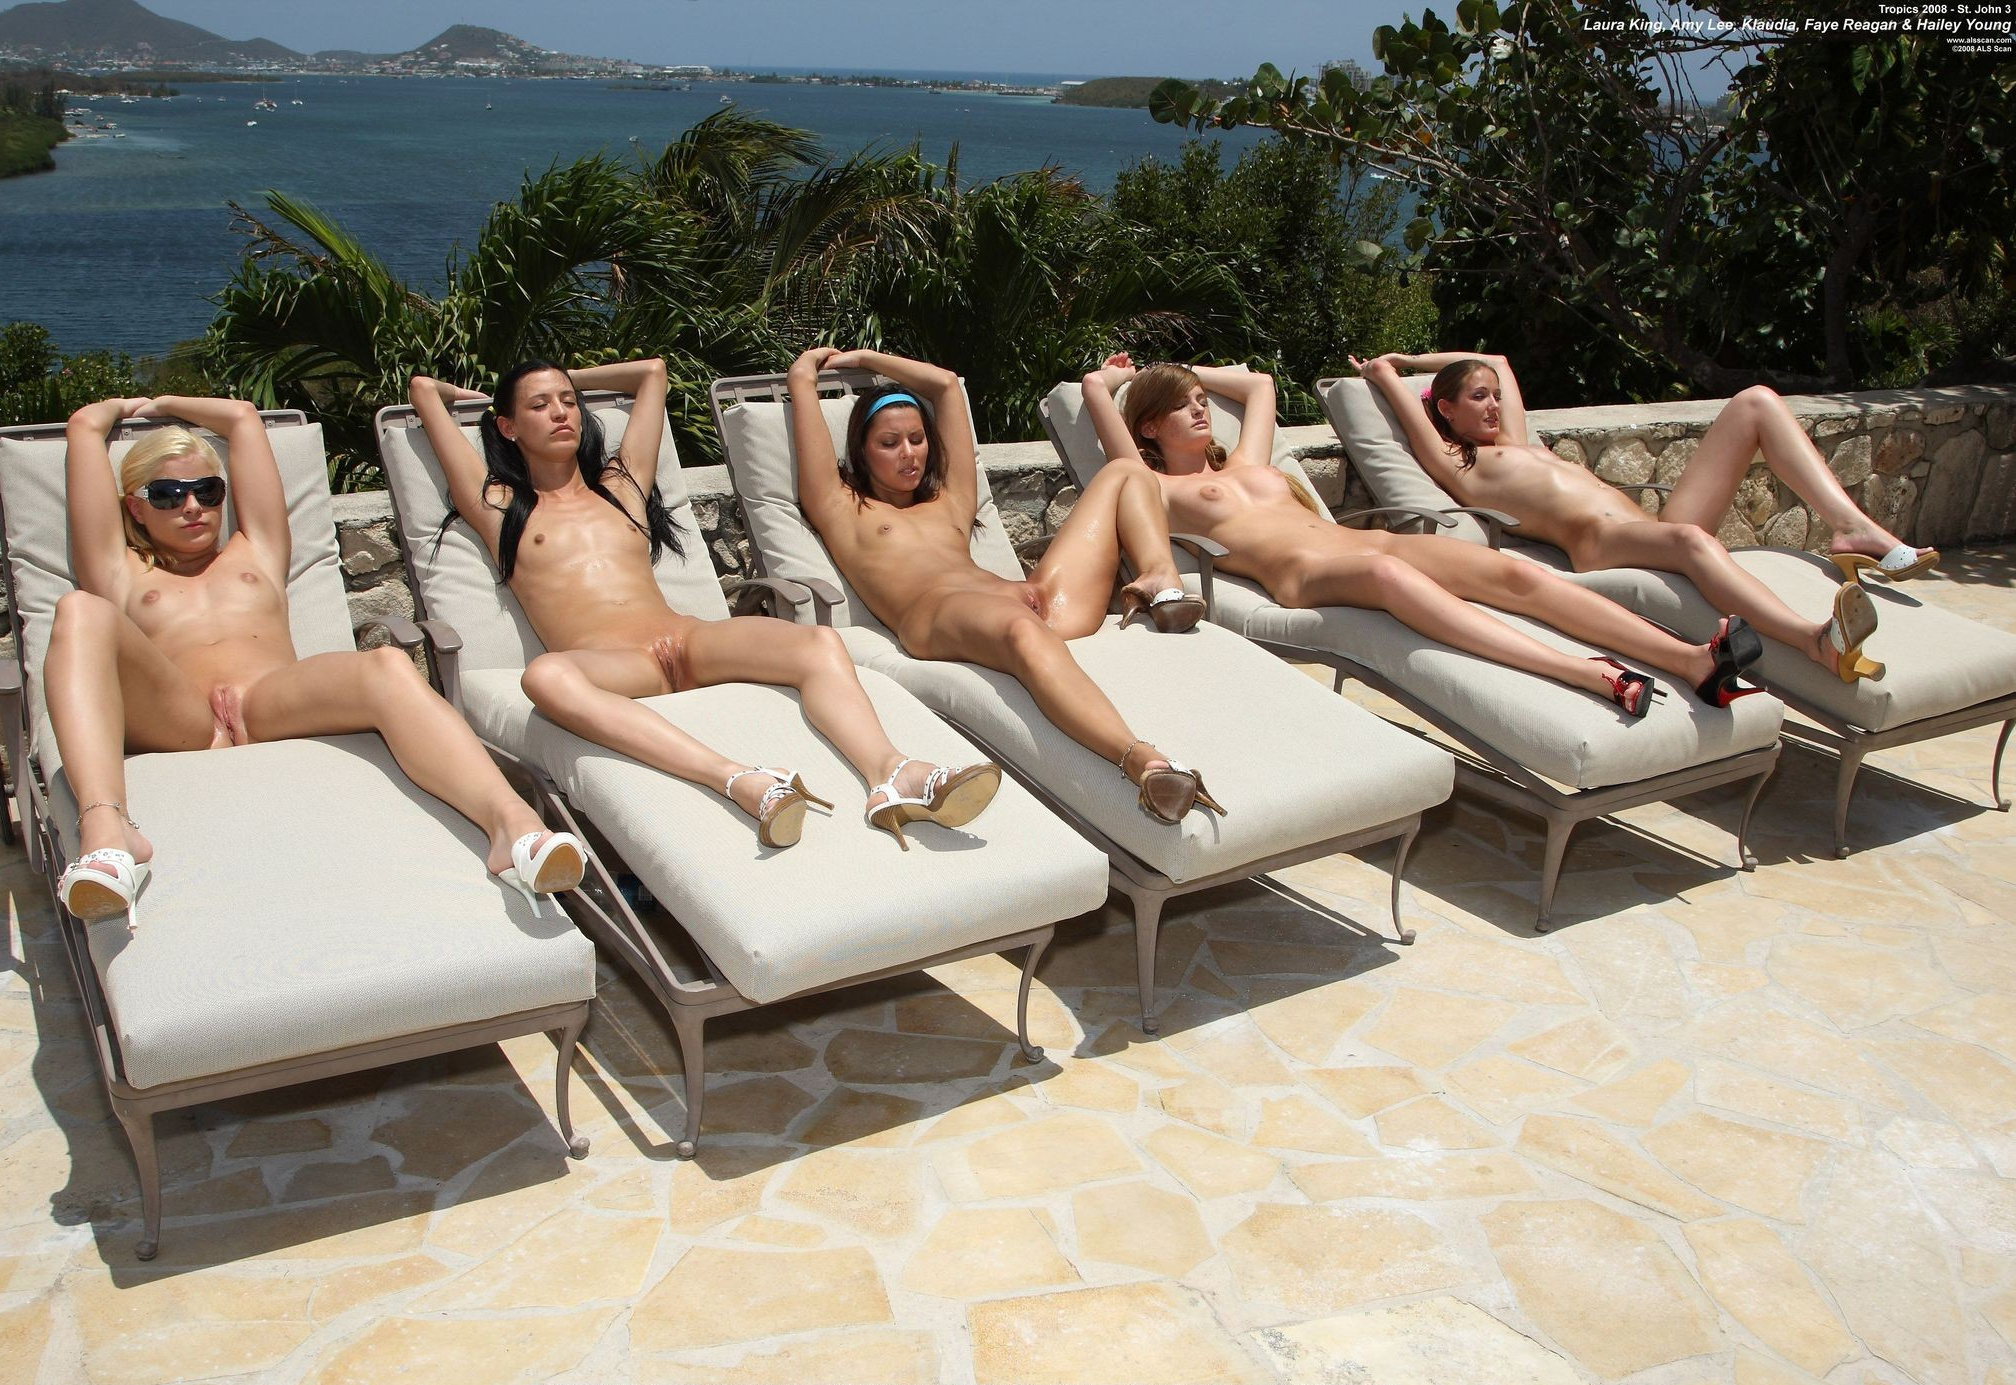 naked-girls-in-group-mix-vol3-94